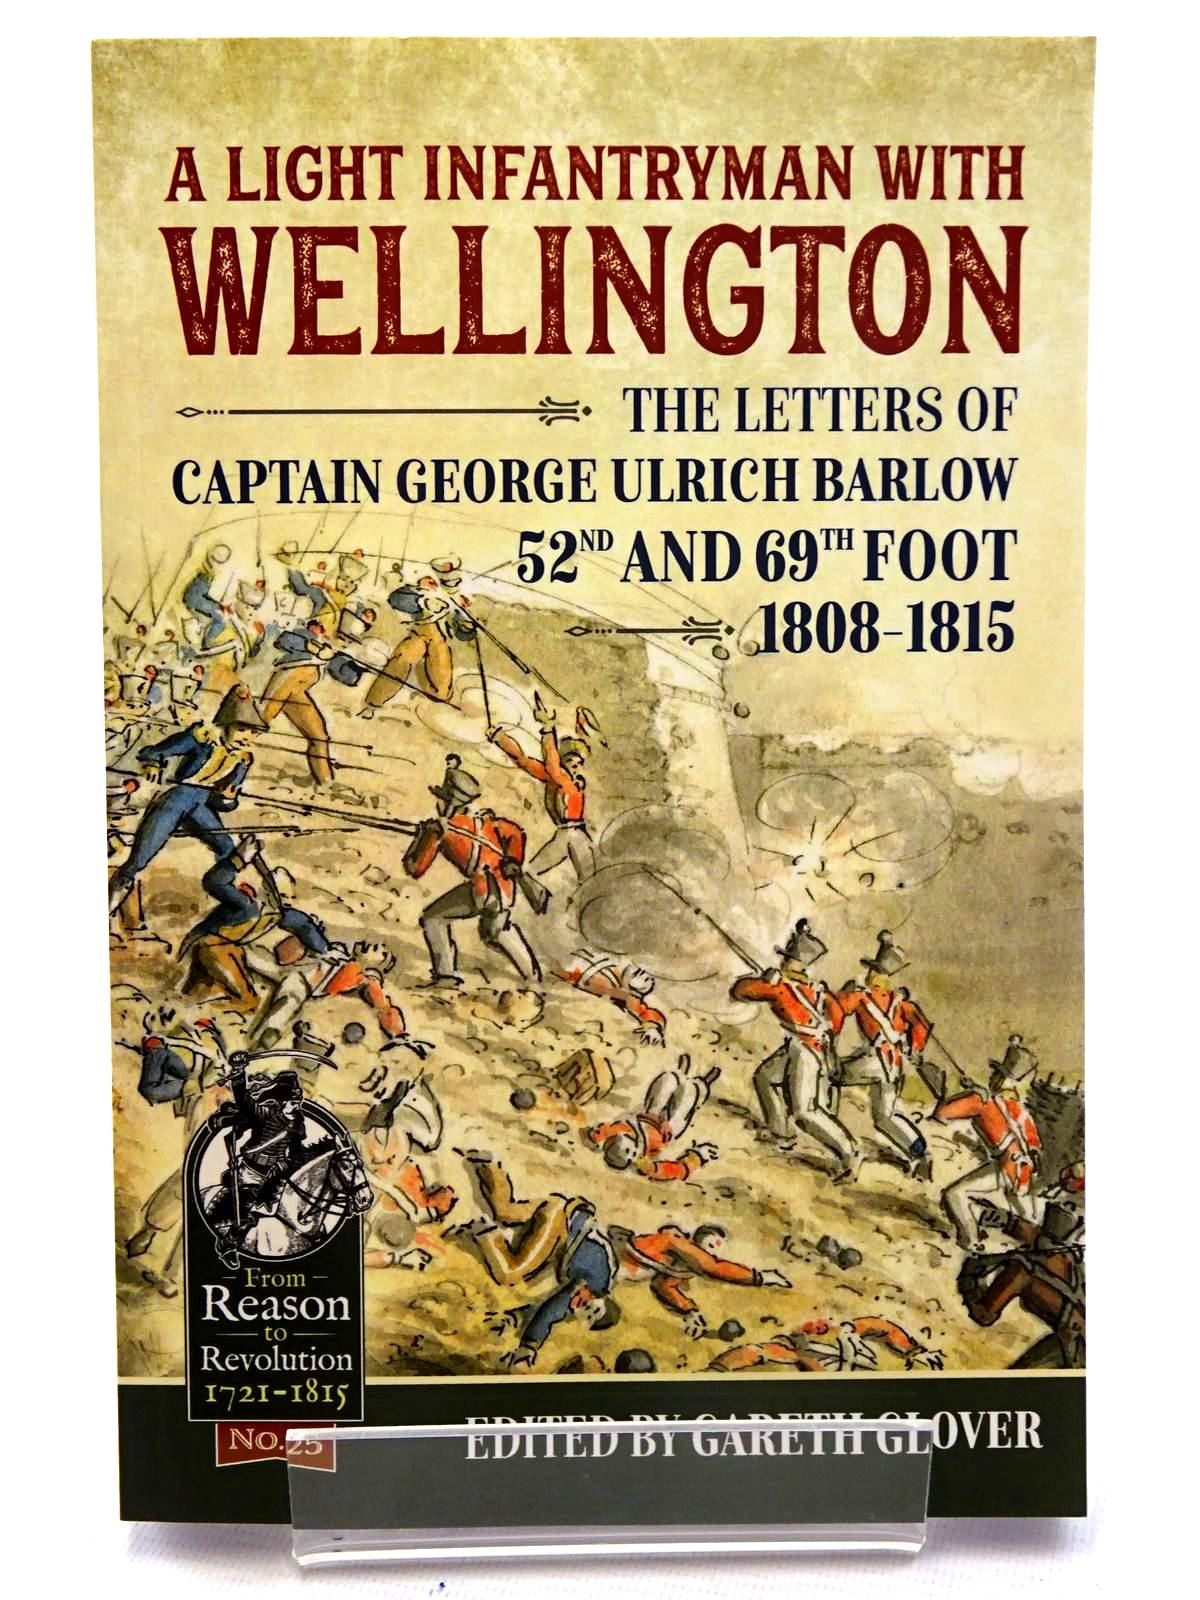 Photo of A LIGHT INFANTRYMAN WITH WELLINGTON: THE LETTERS OF CAPTAIN GEROGE ULRICH BARLOW 52ND AND 69TH FOOT 1808-1815 written by Glover, Gareth published by Helion & Company (STOCK CODE: 1816181)  for sale by Stella & Rose's Books